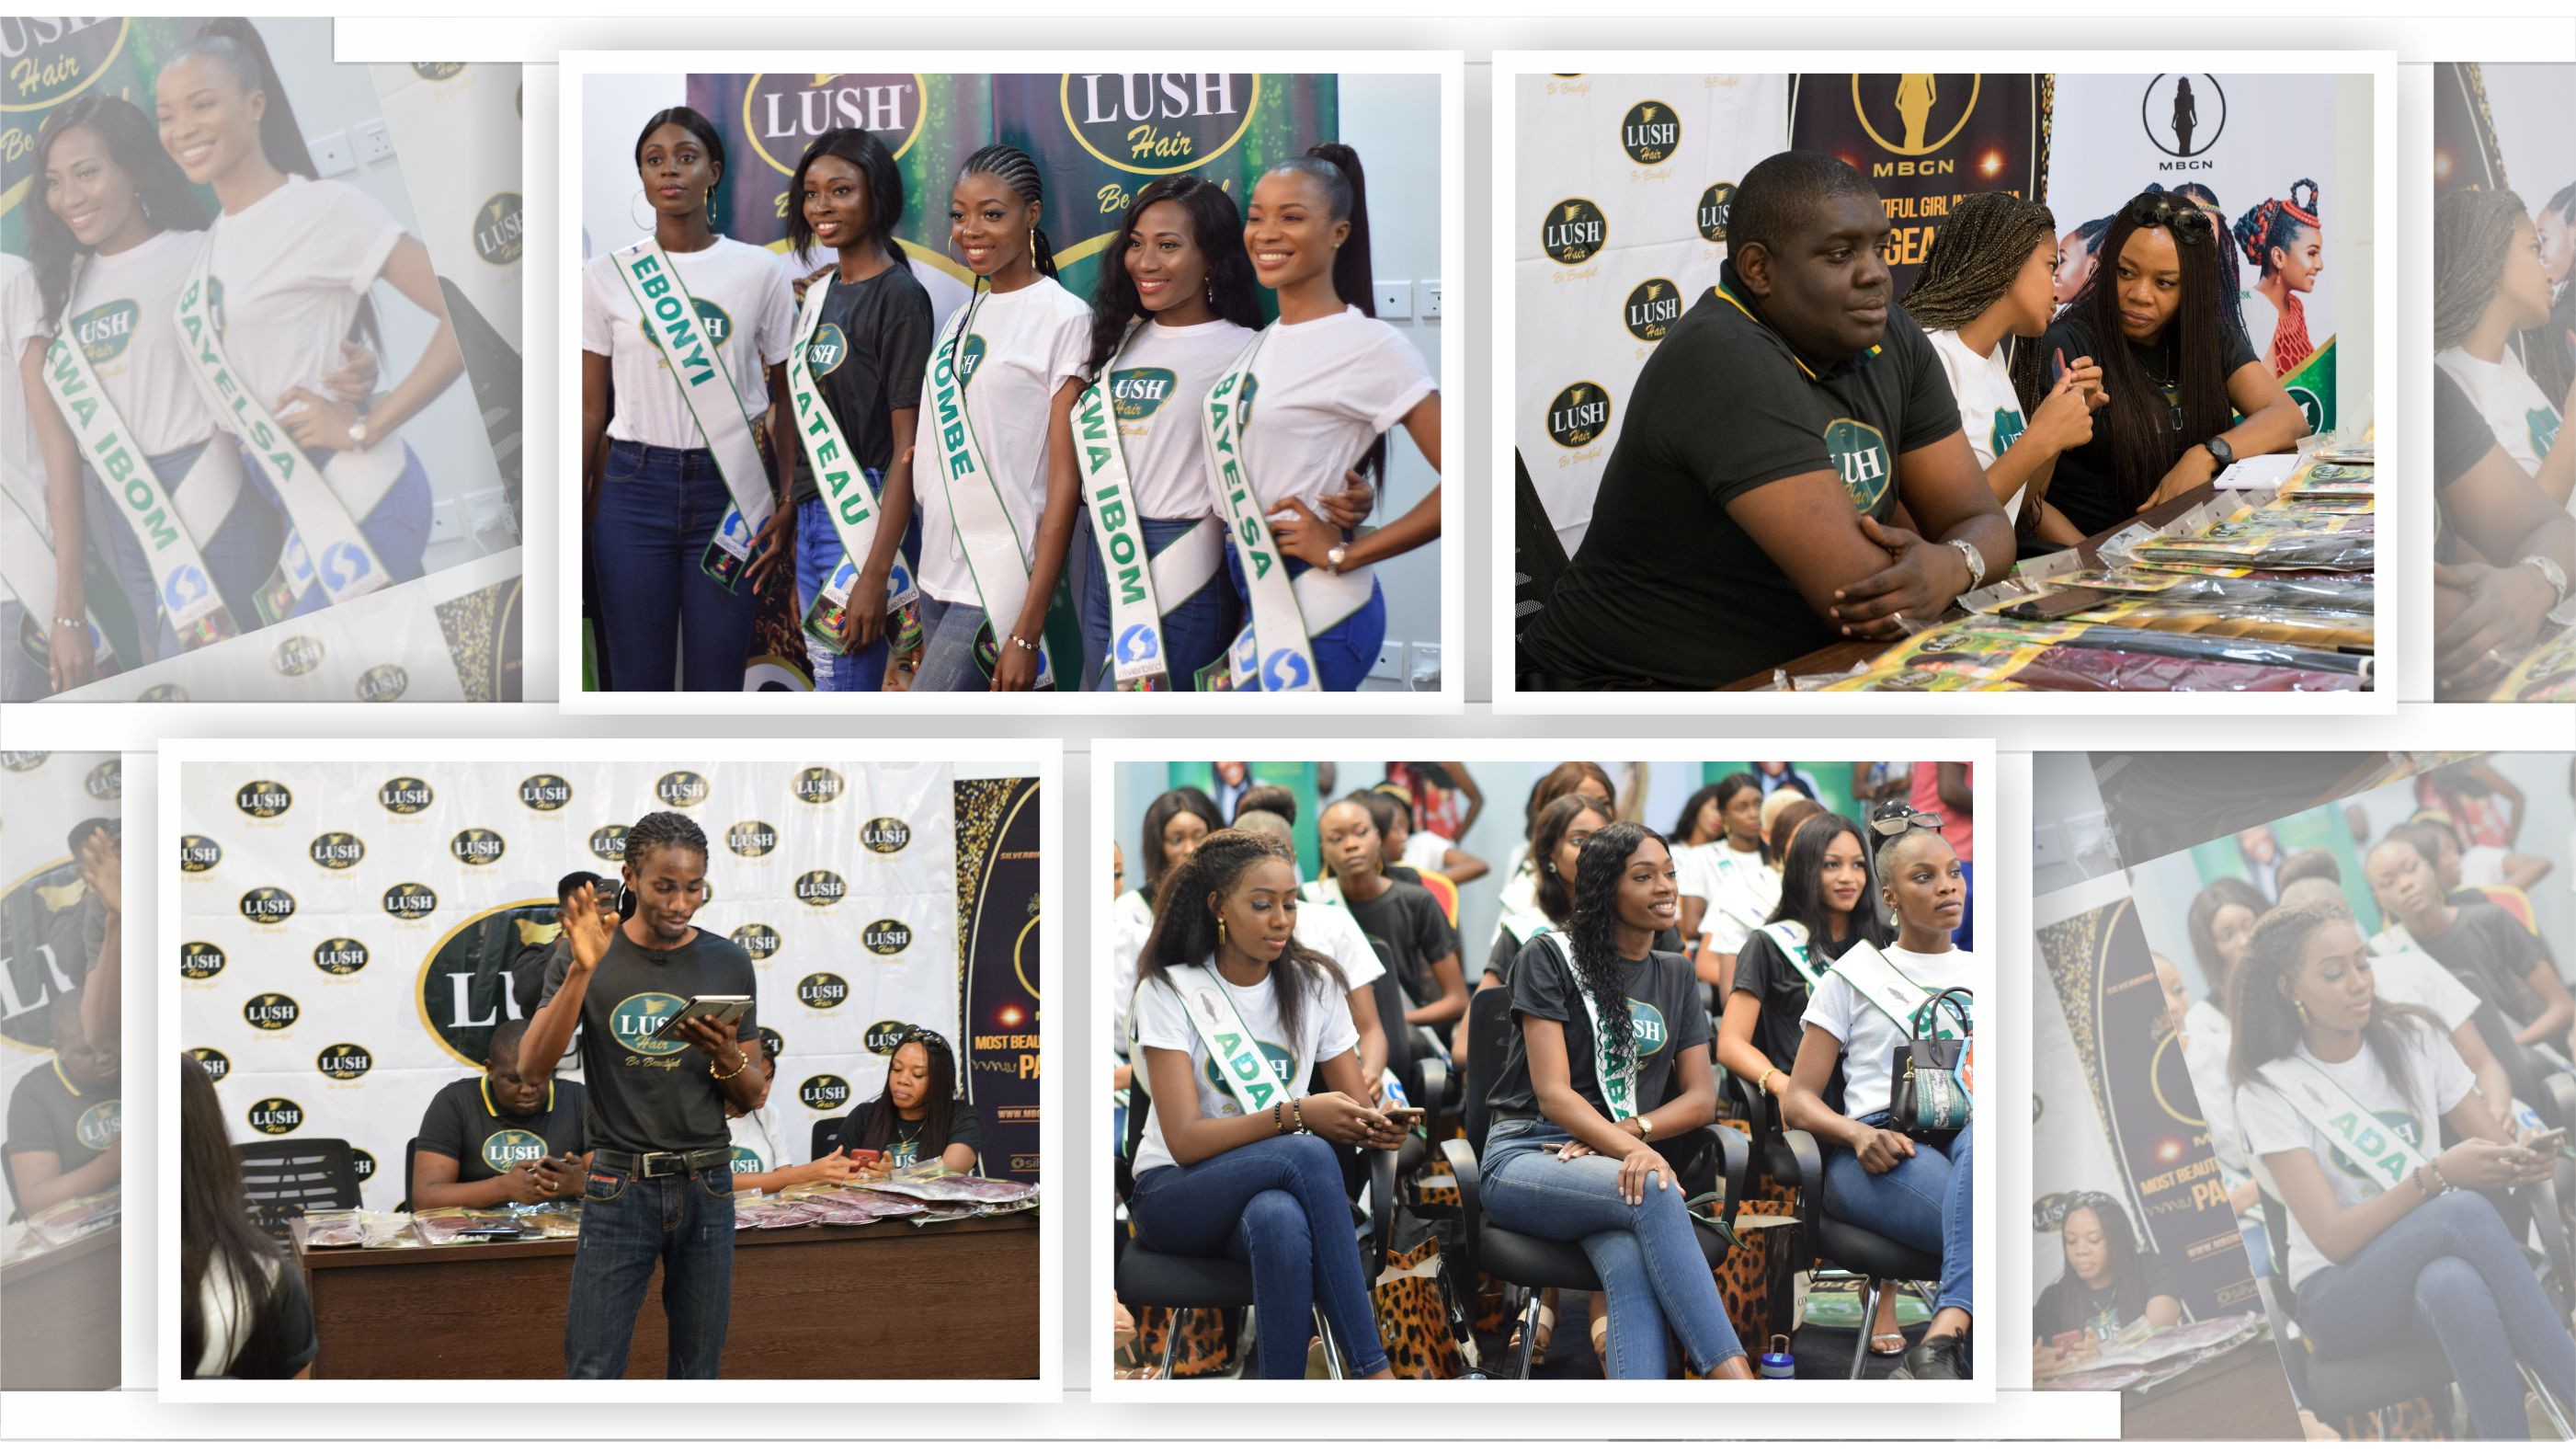 Miss Adamawa of 2019 MBGN Pageant Becomes Lush Hair Ambassador